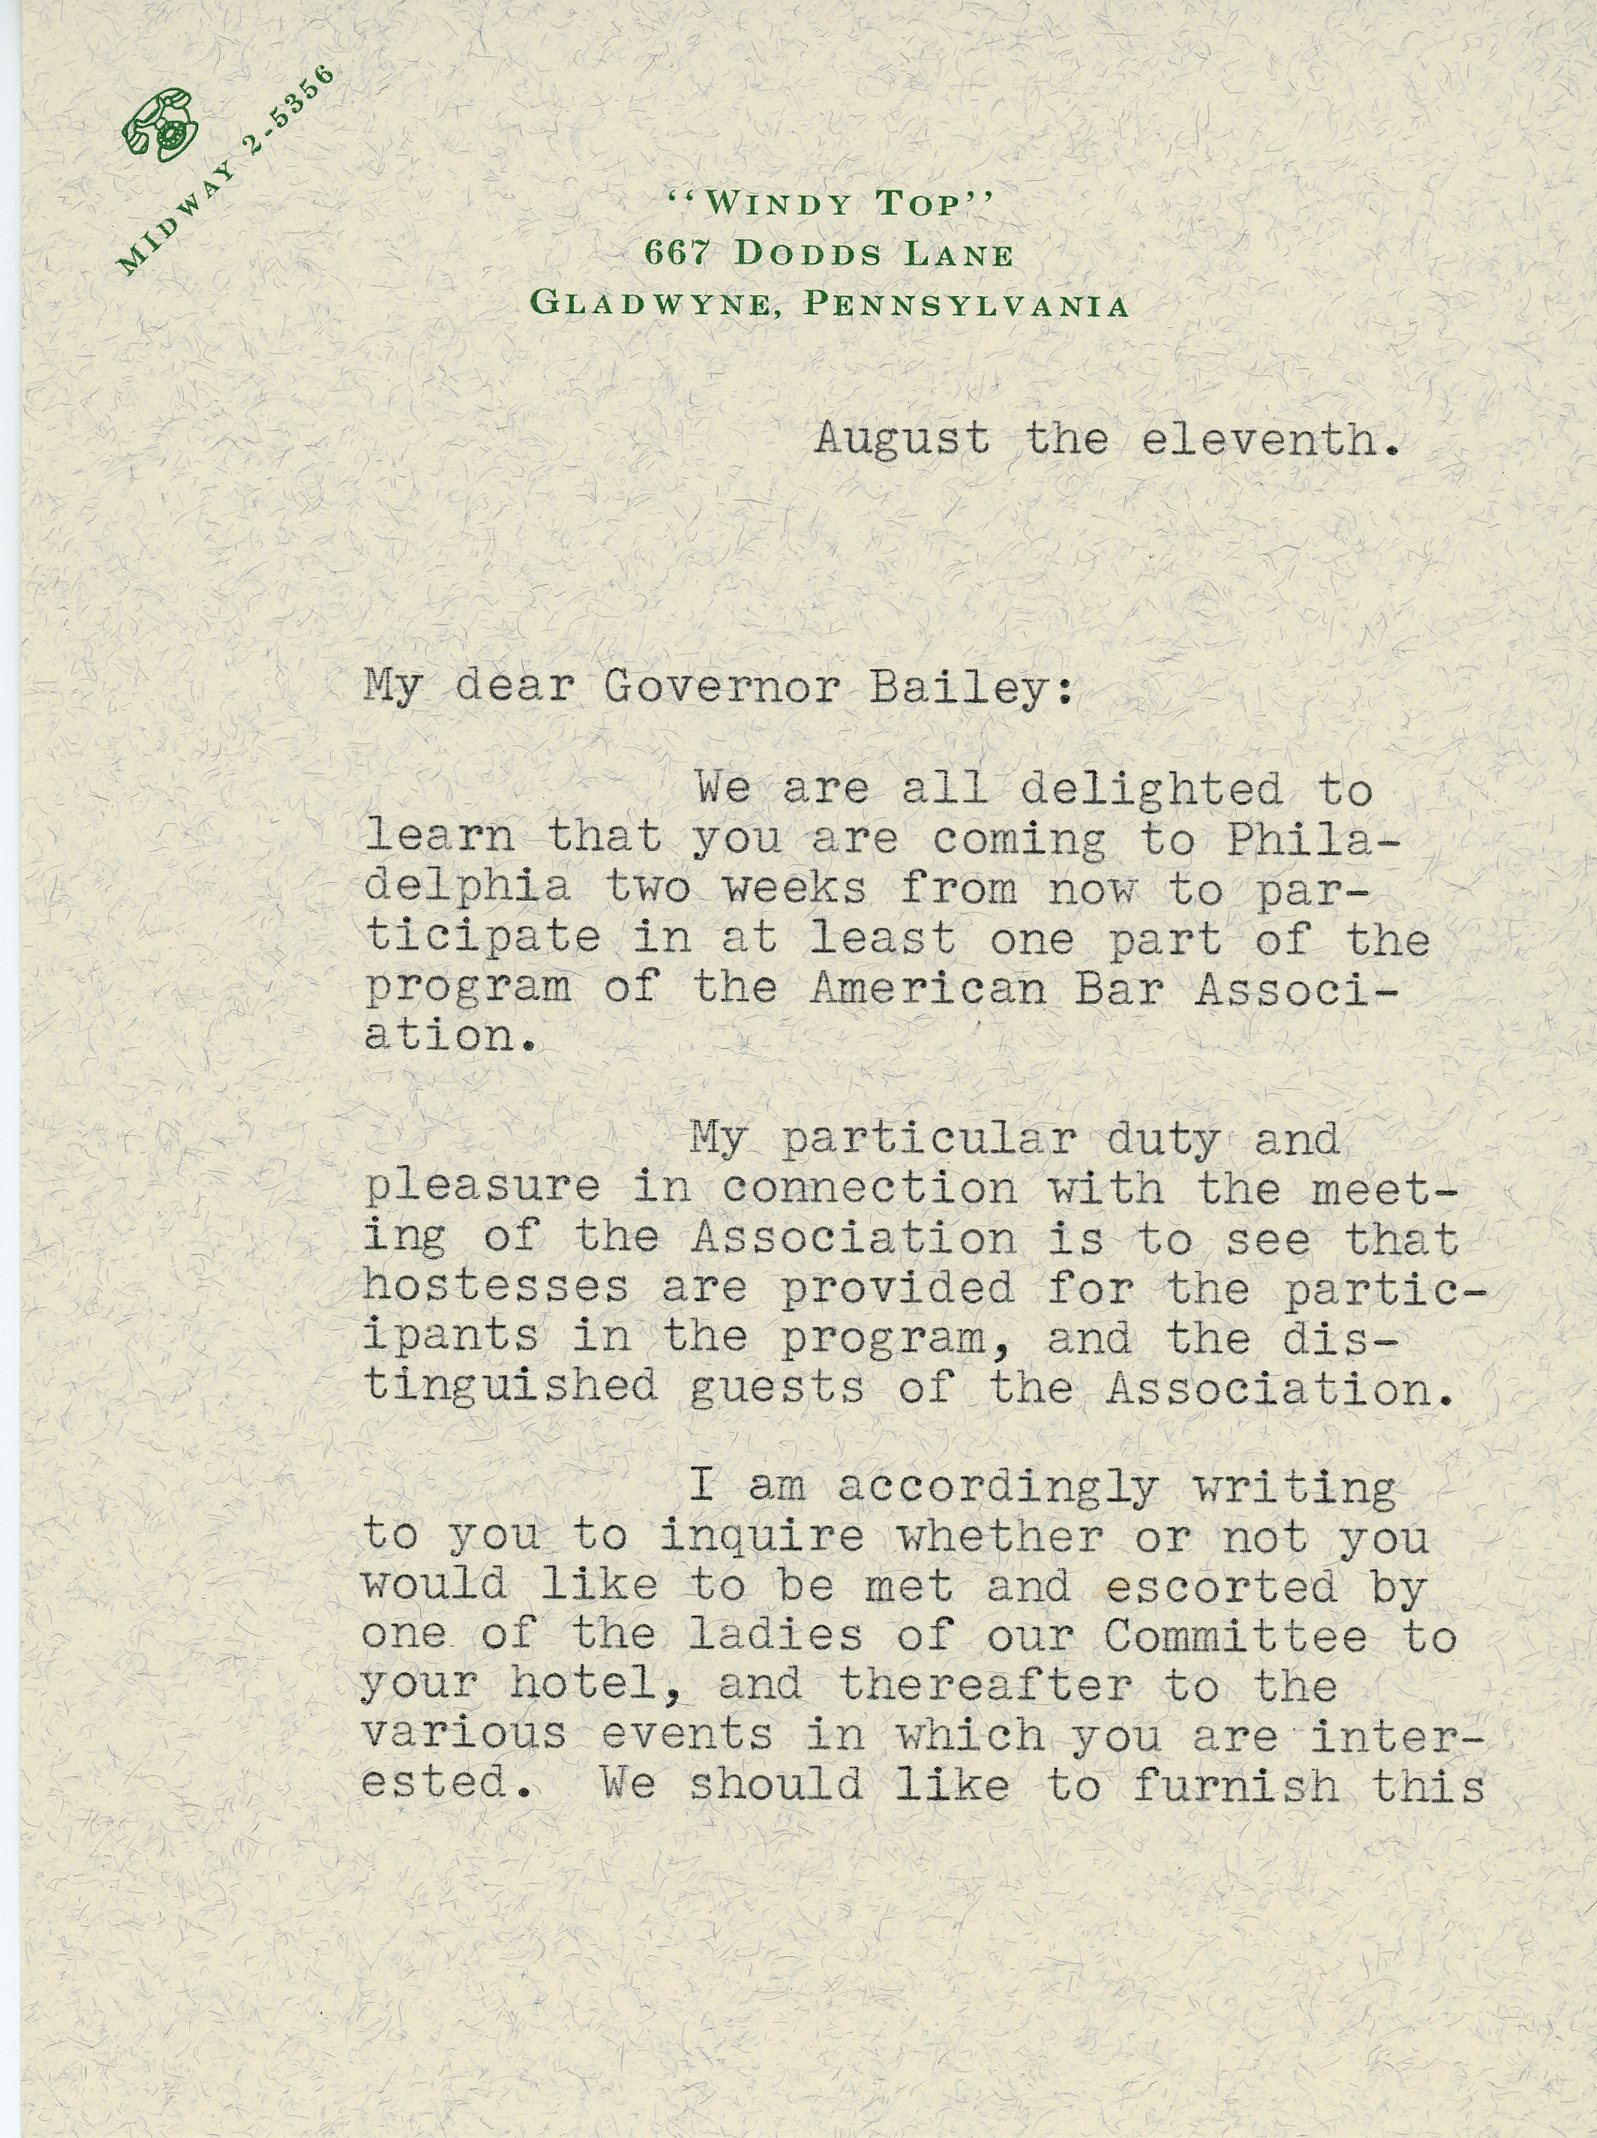 Mrs. Arthur Littleton to Governor Bailey,  August 11